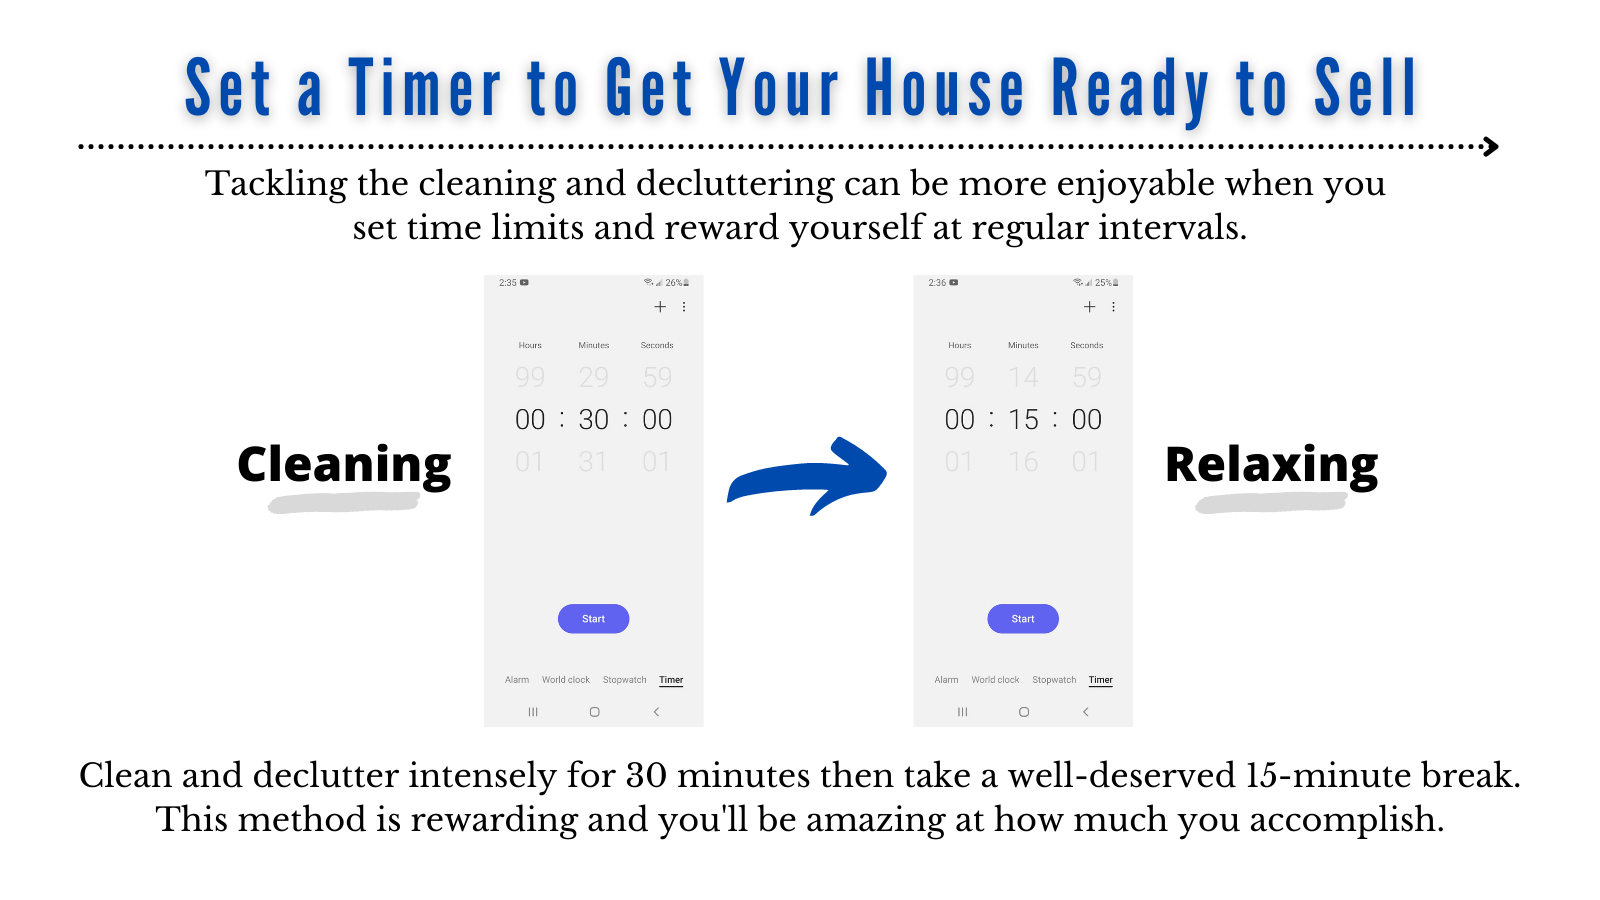 Set a timer to get your house ready to sell